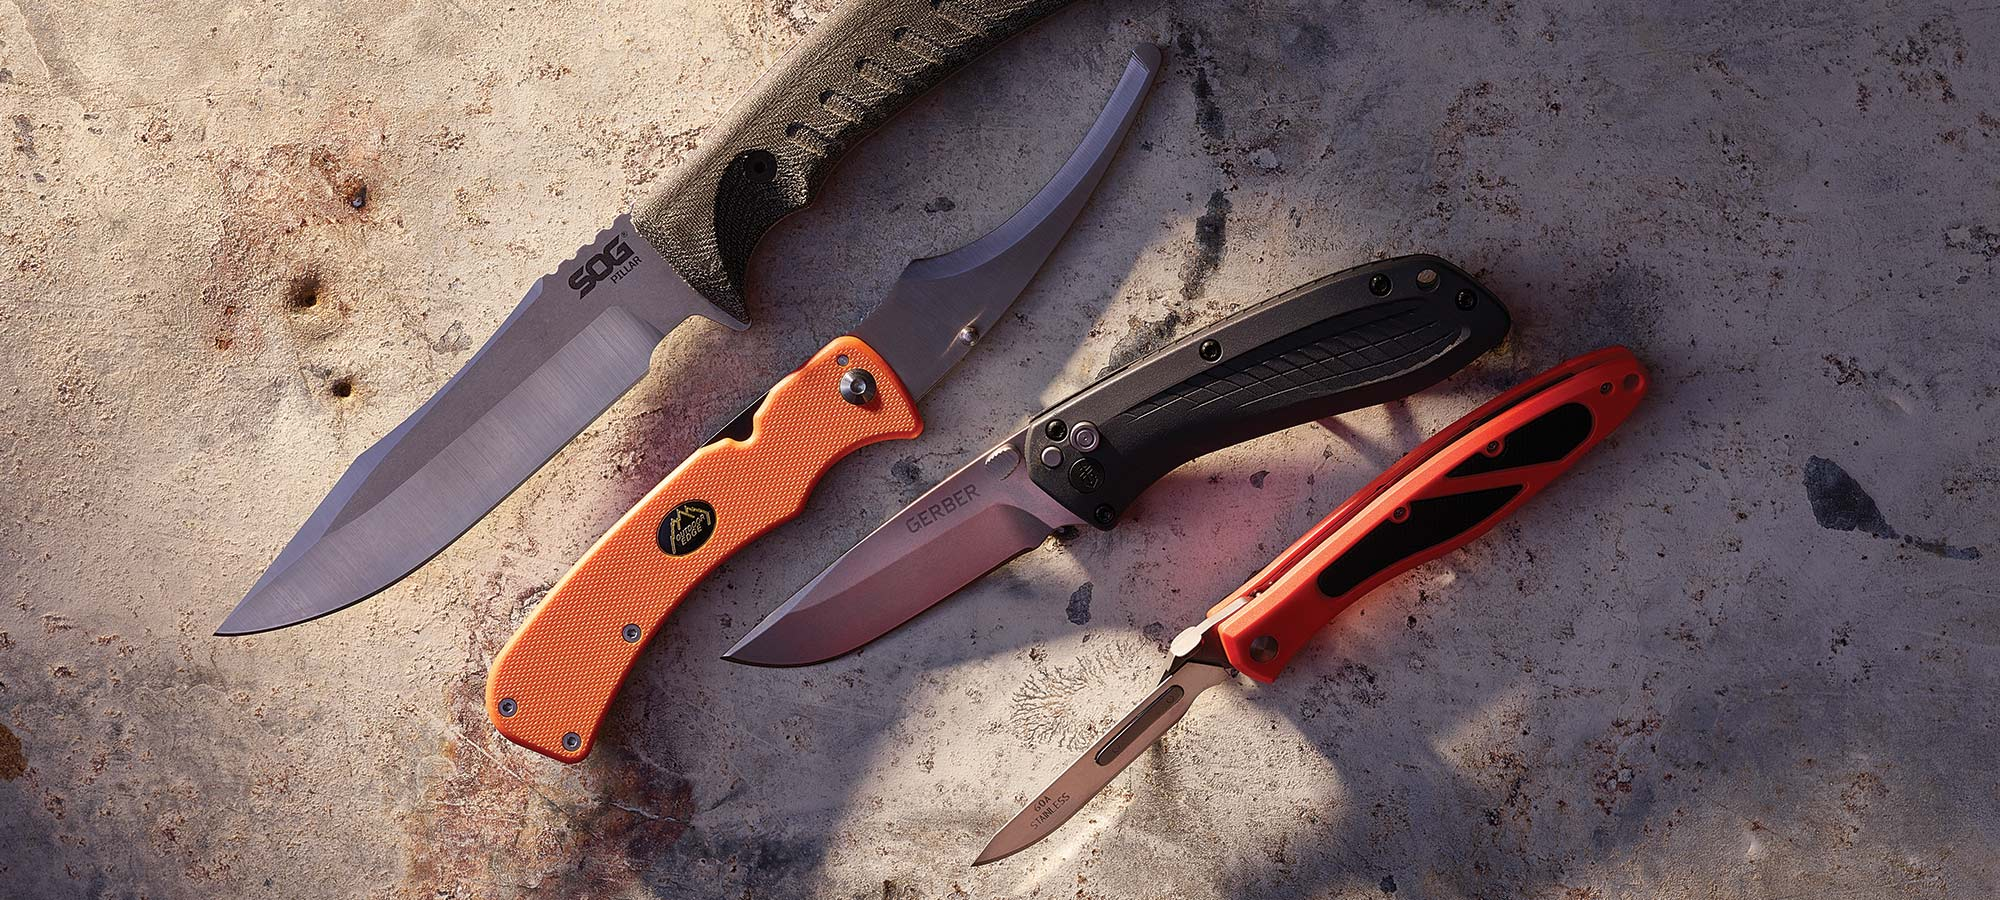 new hunting knives gear test